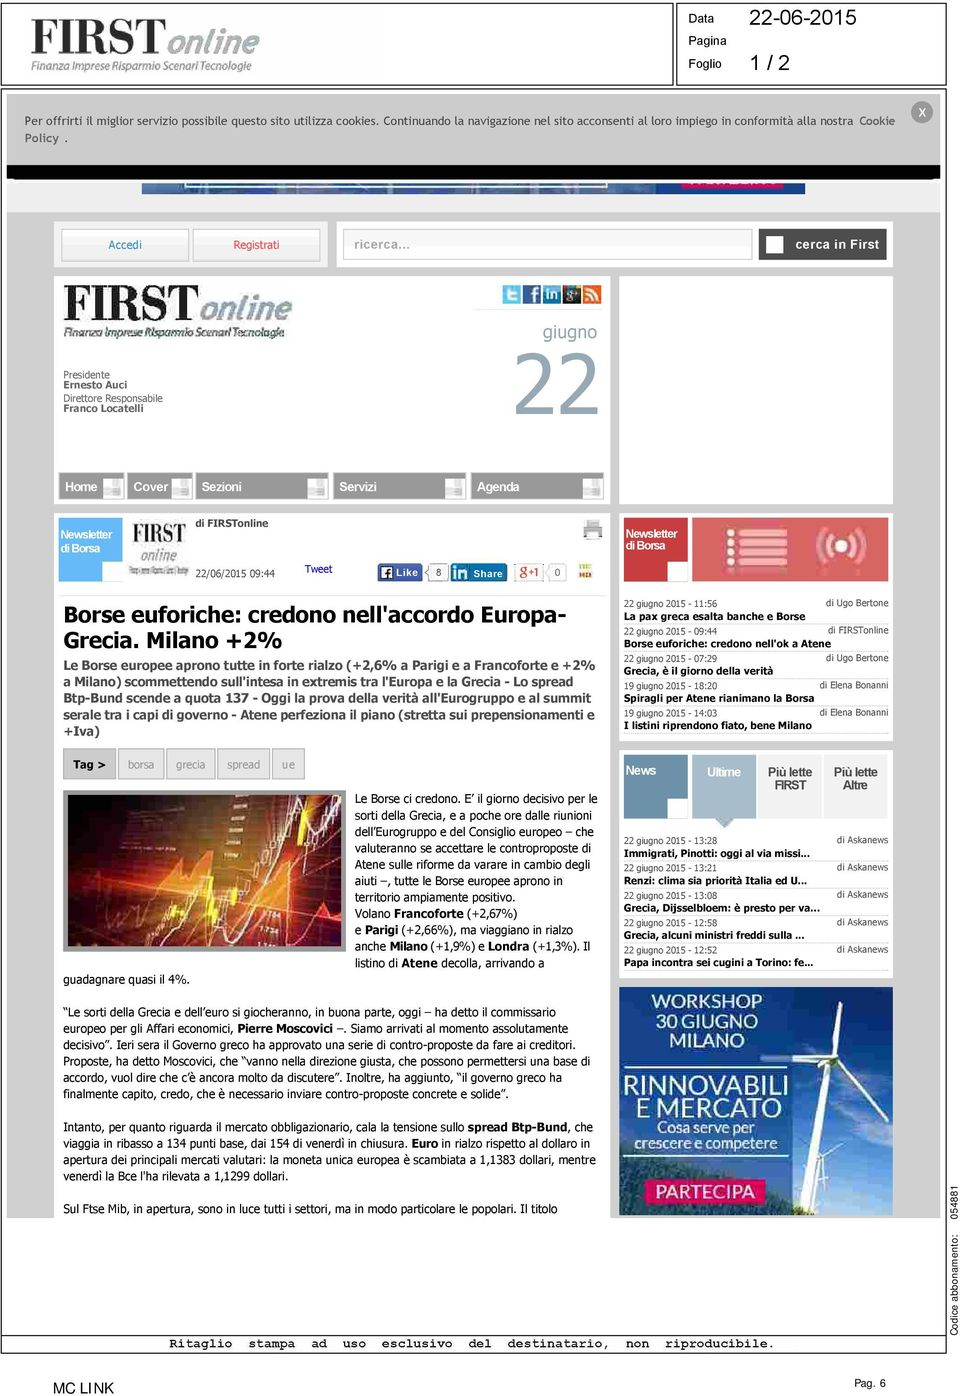 .. cerca in First giugno 22 Presidente Ernesto Auci Direttore Responsabile Franco Locatelli Home Cover Sezioni Servizi Agenda Newsletter di Borsa di FIRSTonline Newsletter di Borsa 22/06/2015 09:44